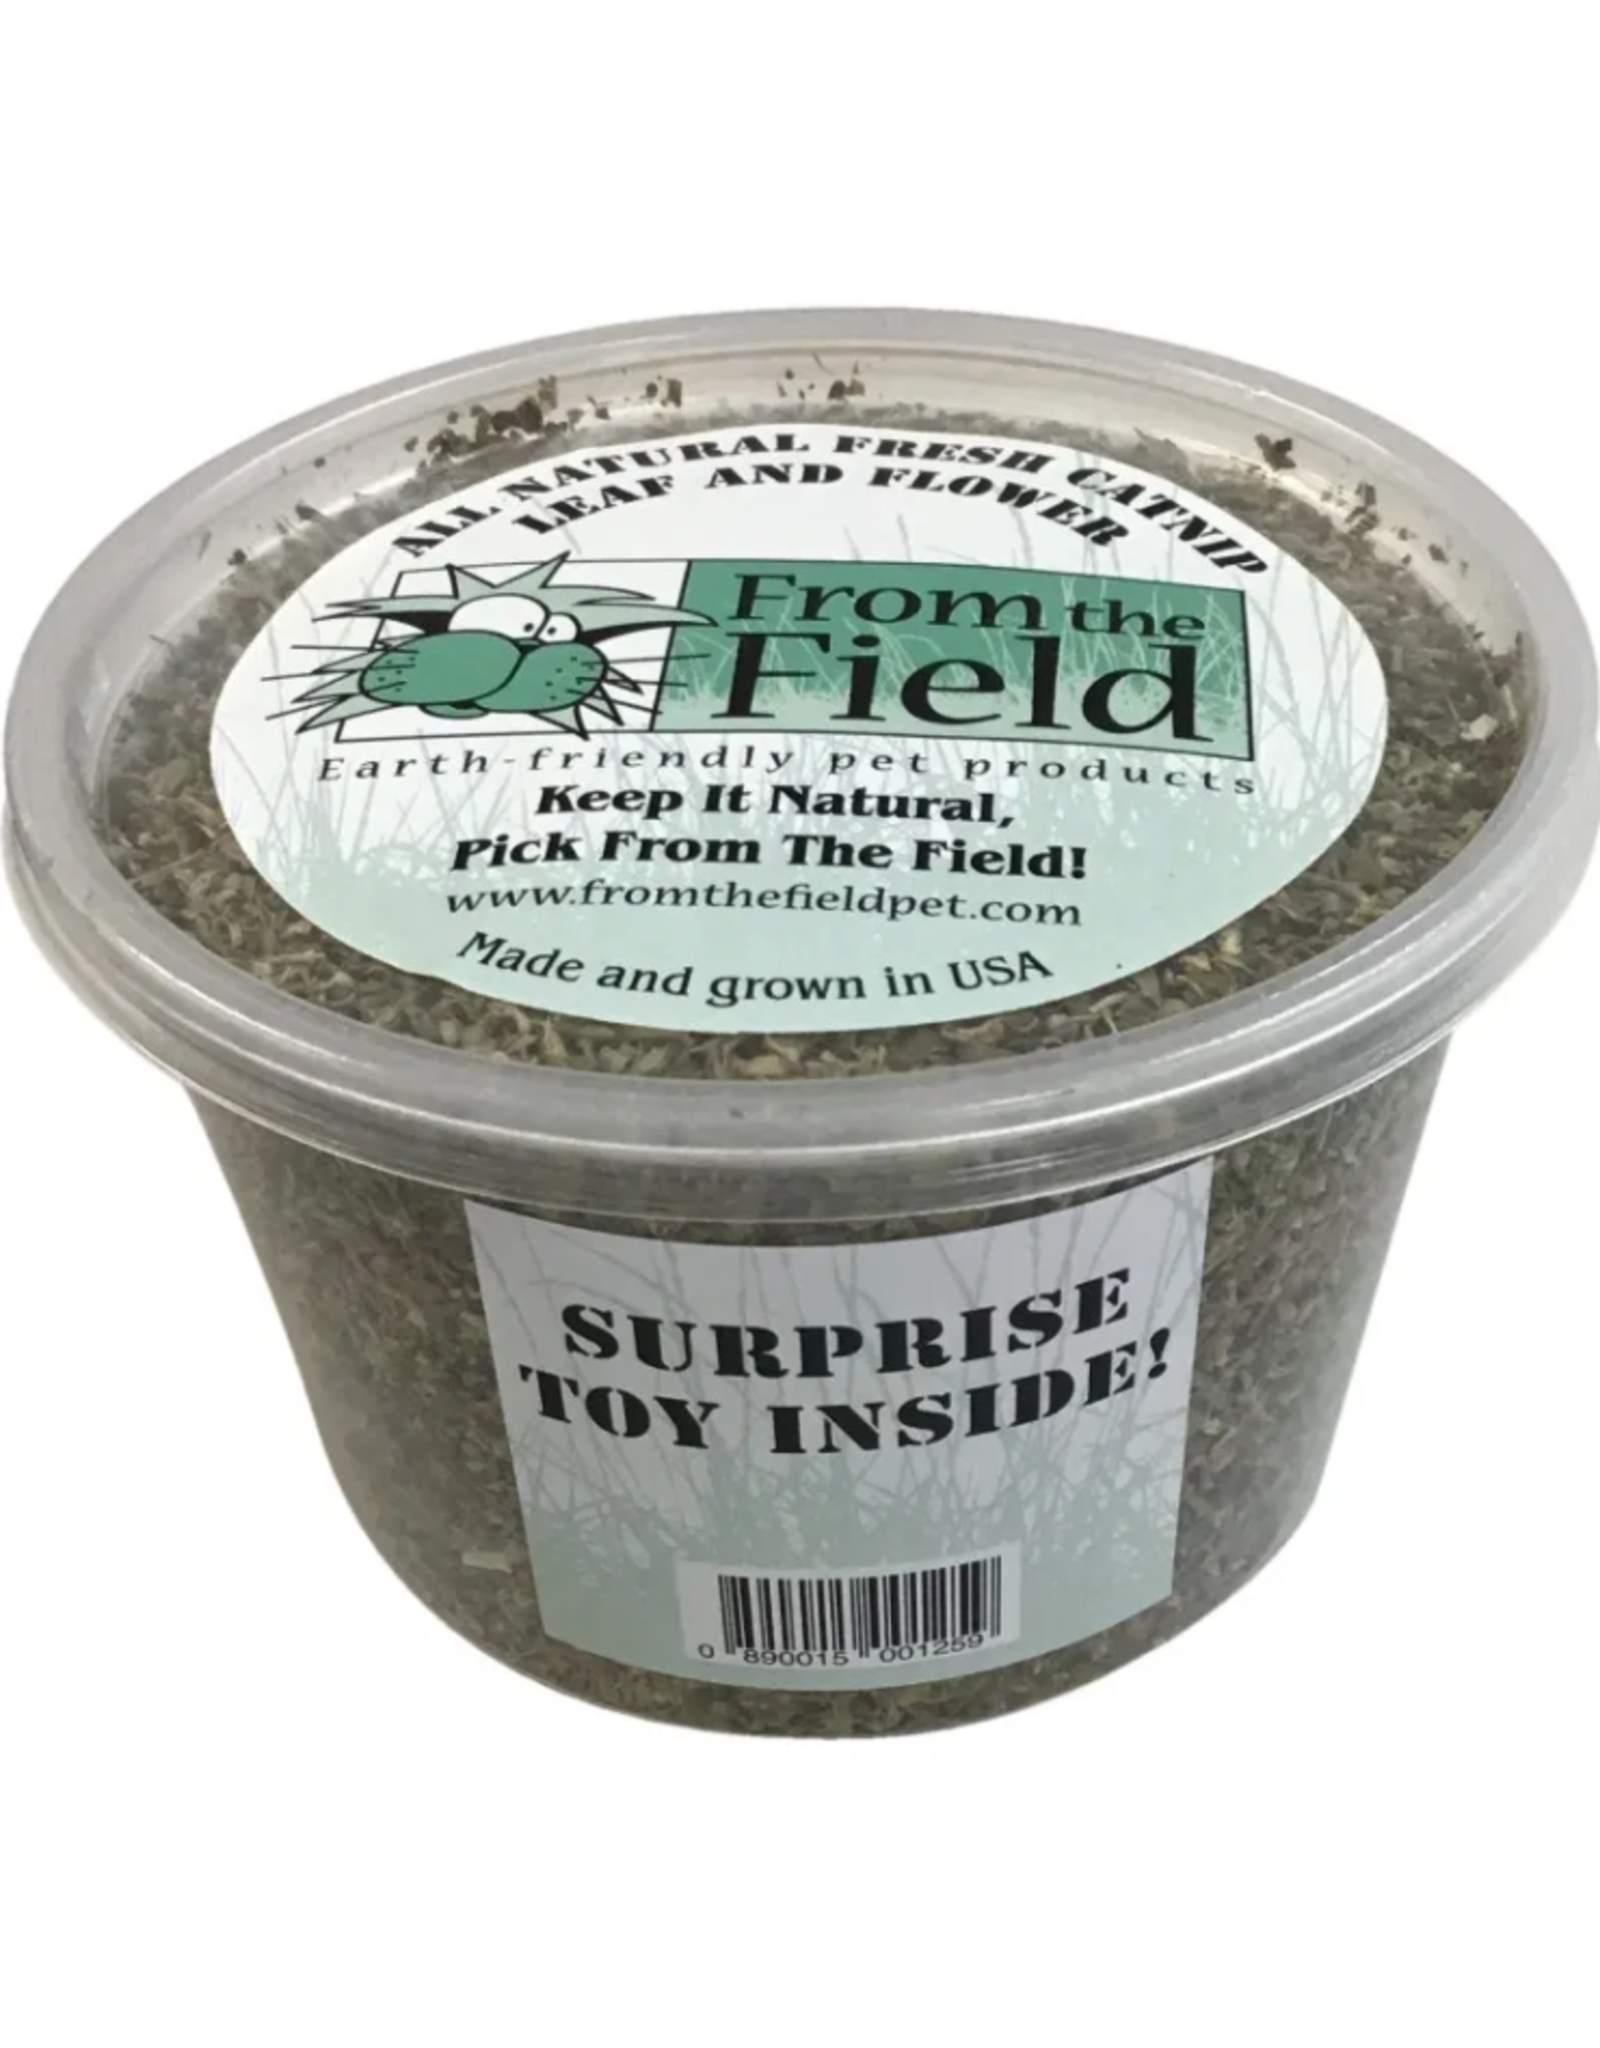 From the Field From the Field Catnip Leaf & Flower 2oz Tub w/Toy